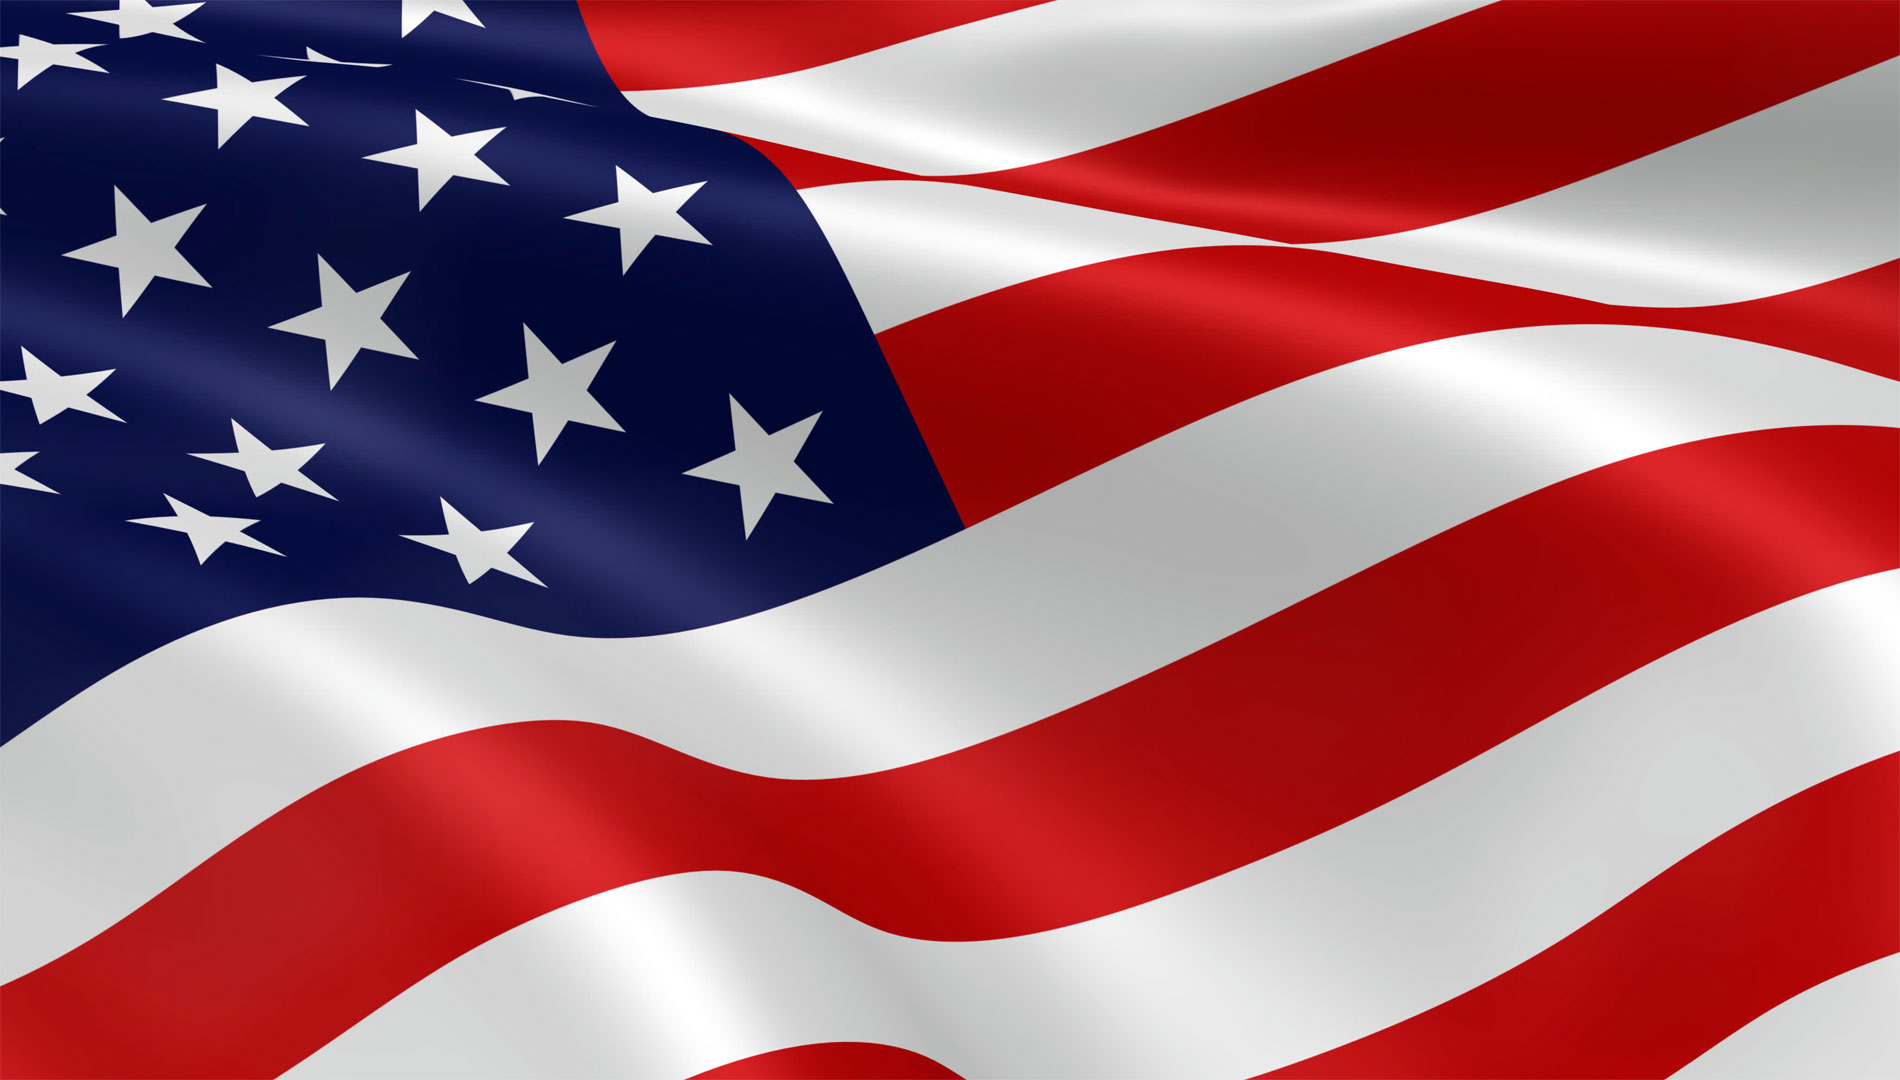 American Flag HD Images and Wallpaper